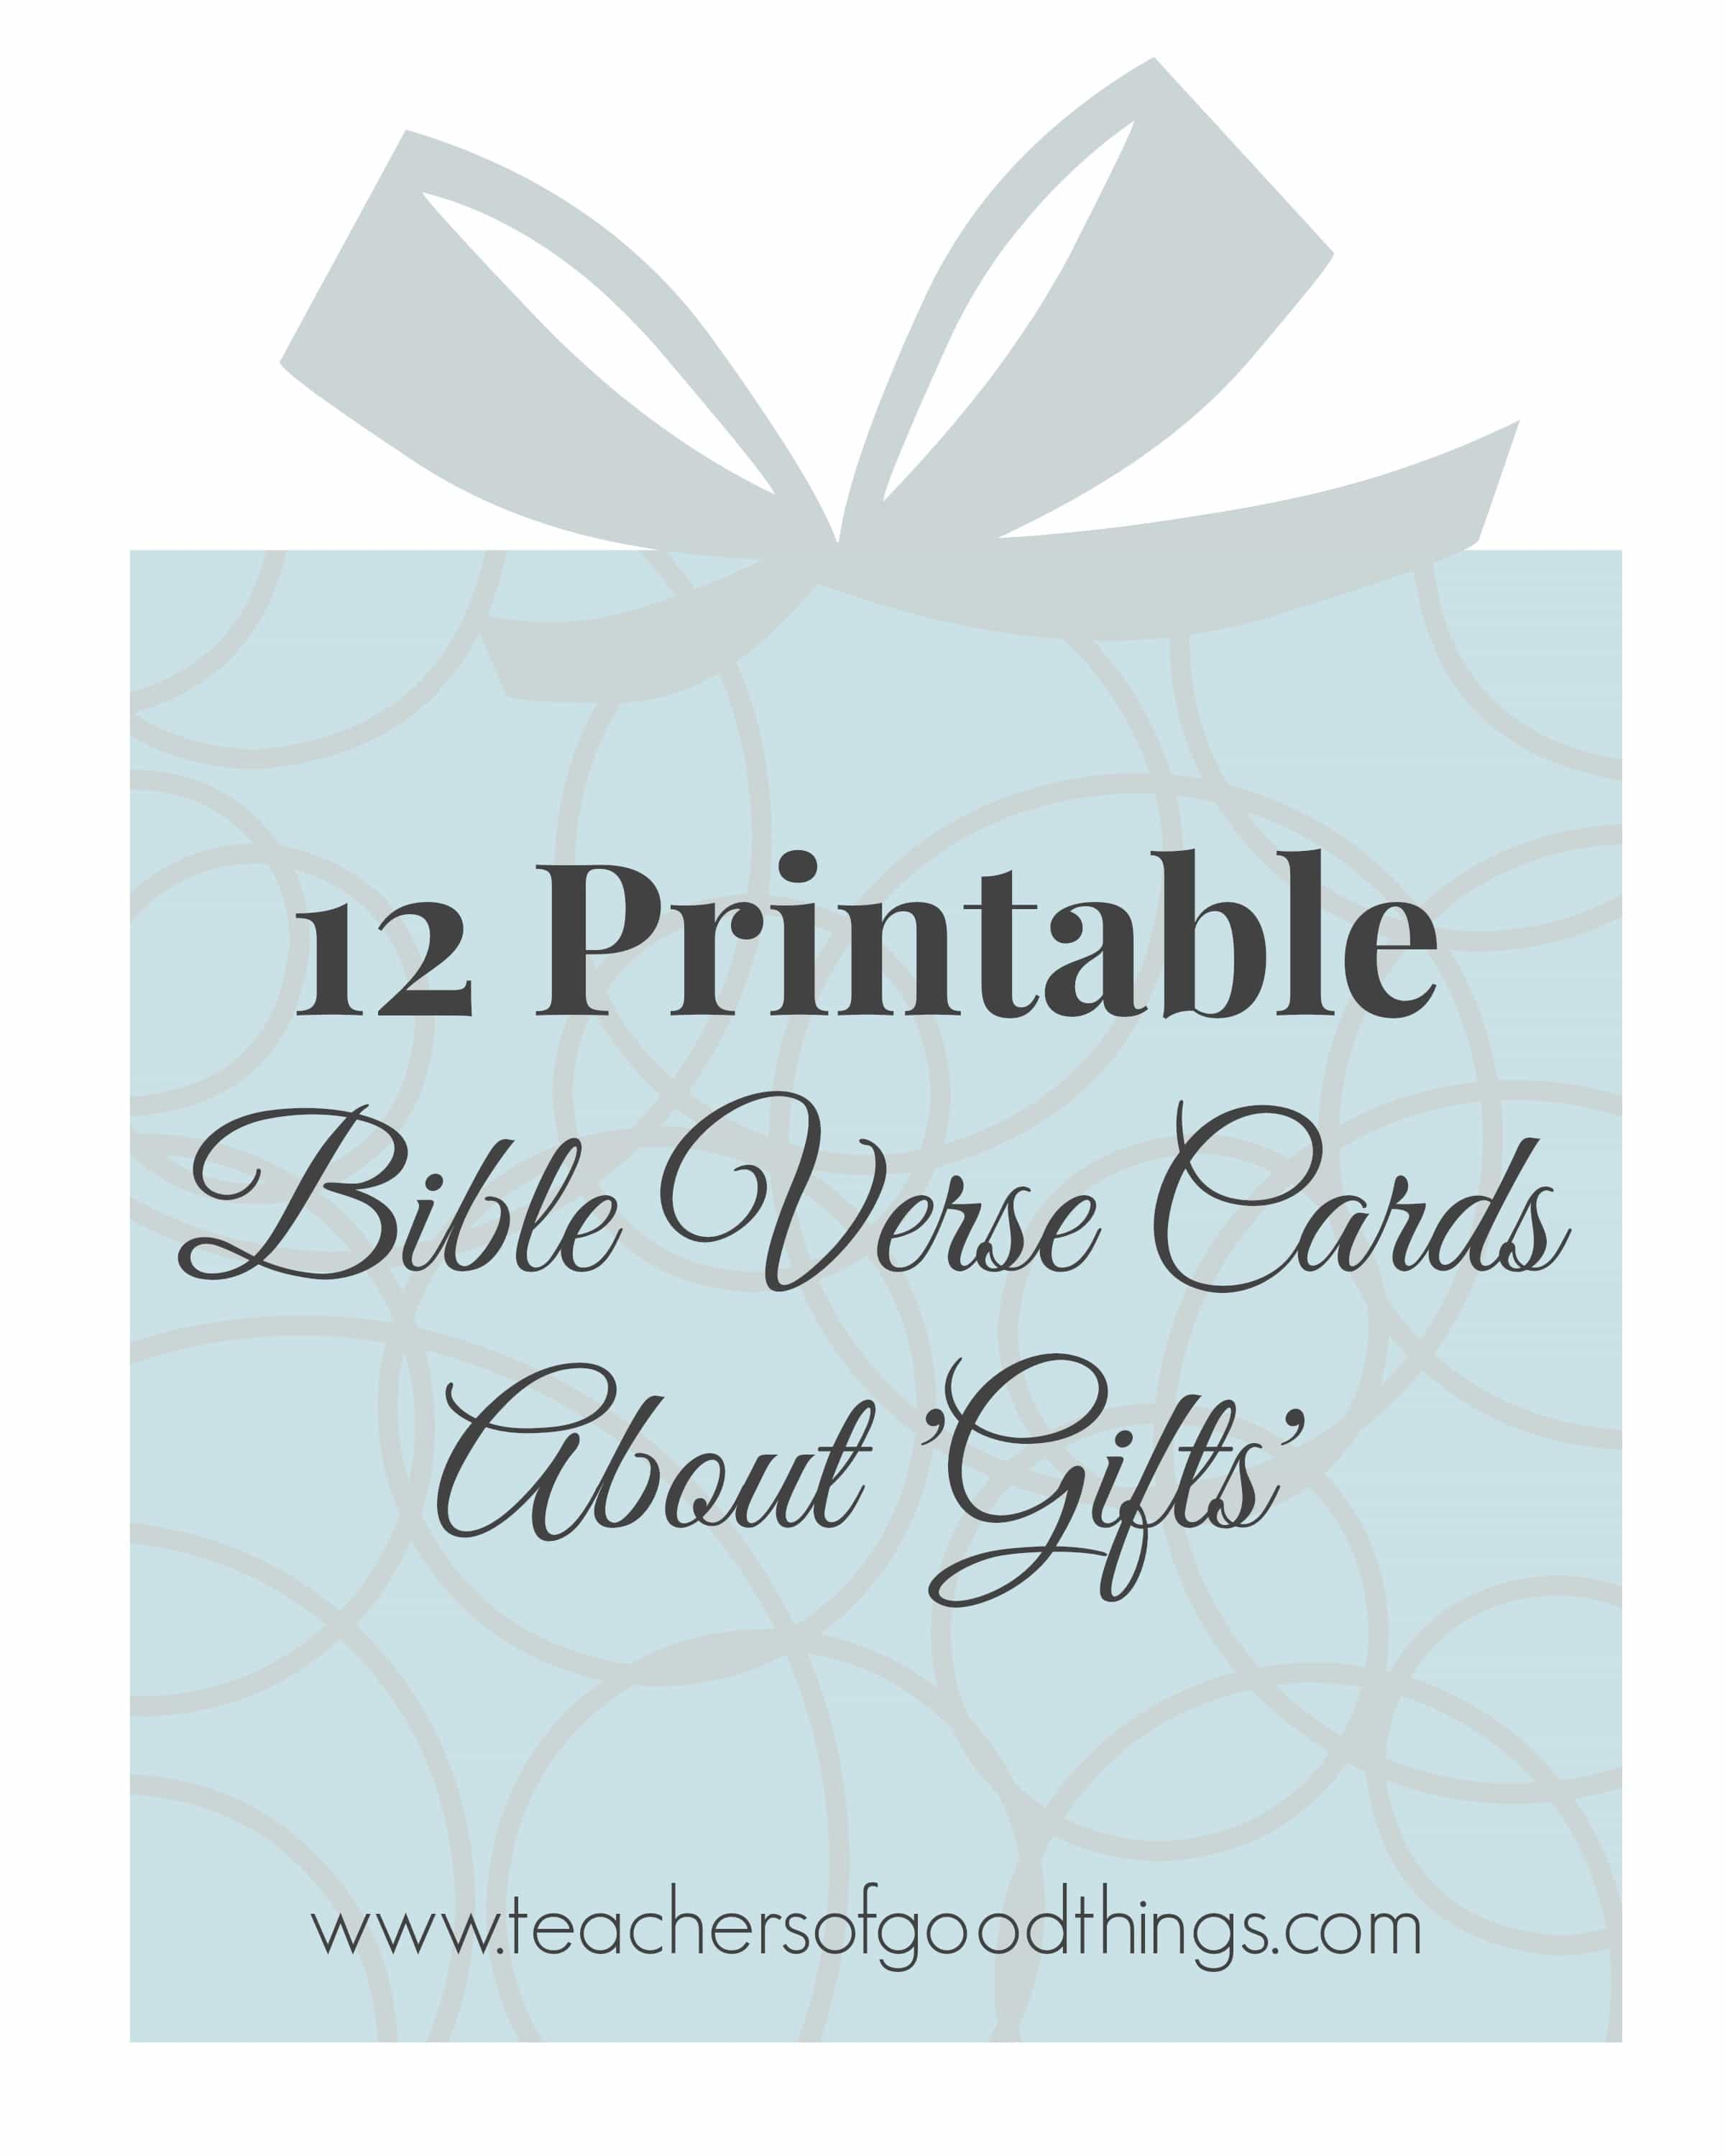 12 Printable Bible Verse Cards About Ts